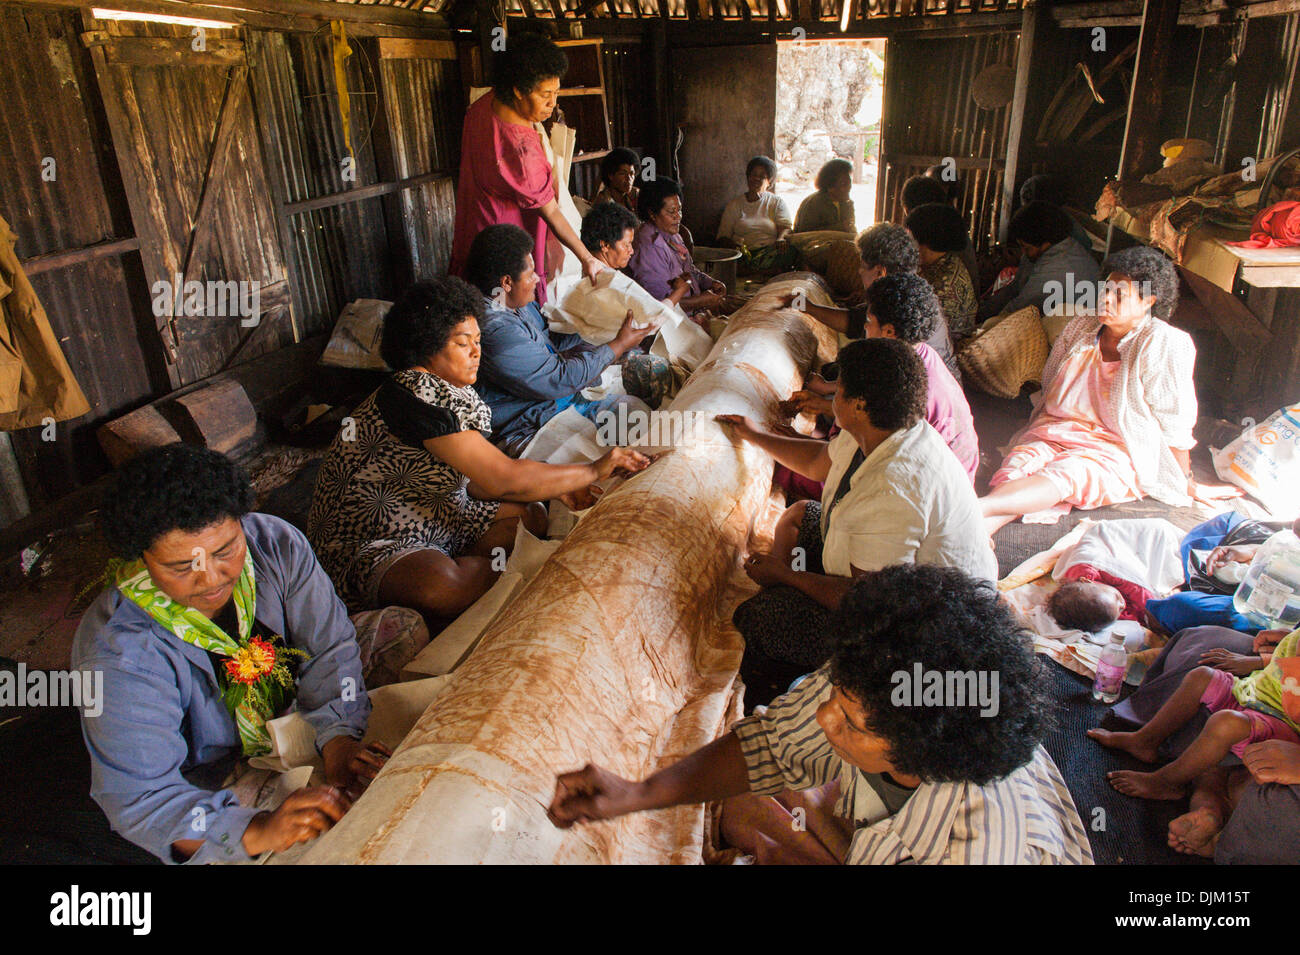 Large group of women working together stenciling on plain bark cloth to make a large traditional printed cloth called tapa. Fiji - Stock Image